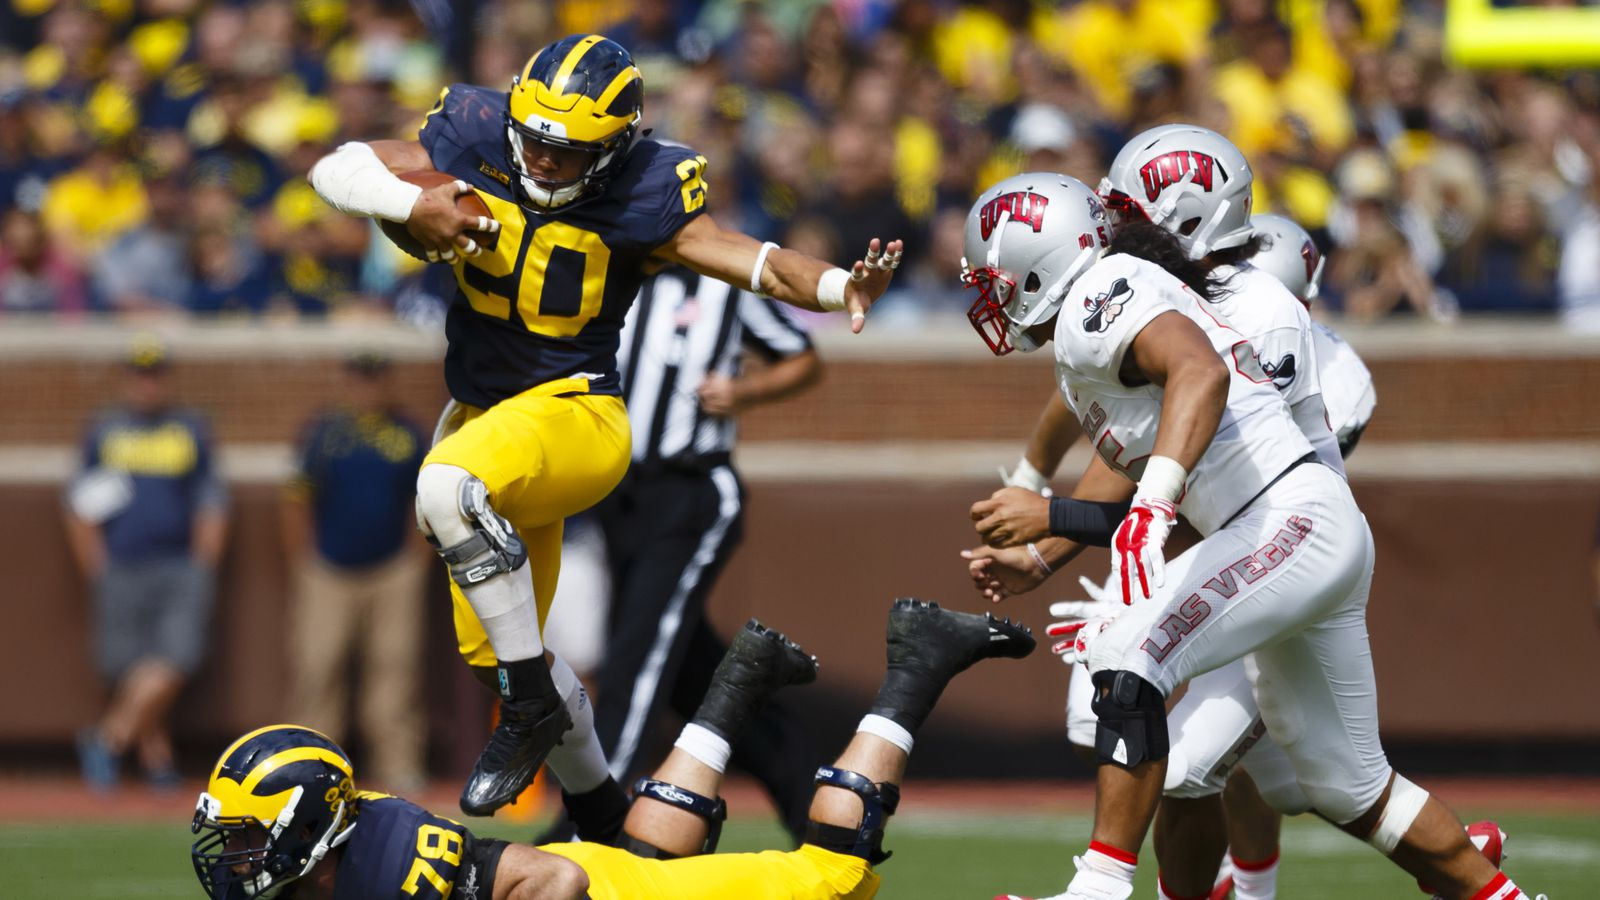 BYU vs Michigan Q&A: Wolverines are the definition of 'ground and pound' - Vanquish The Foe